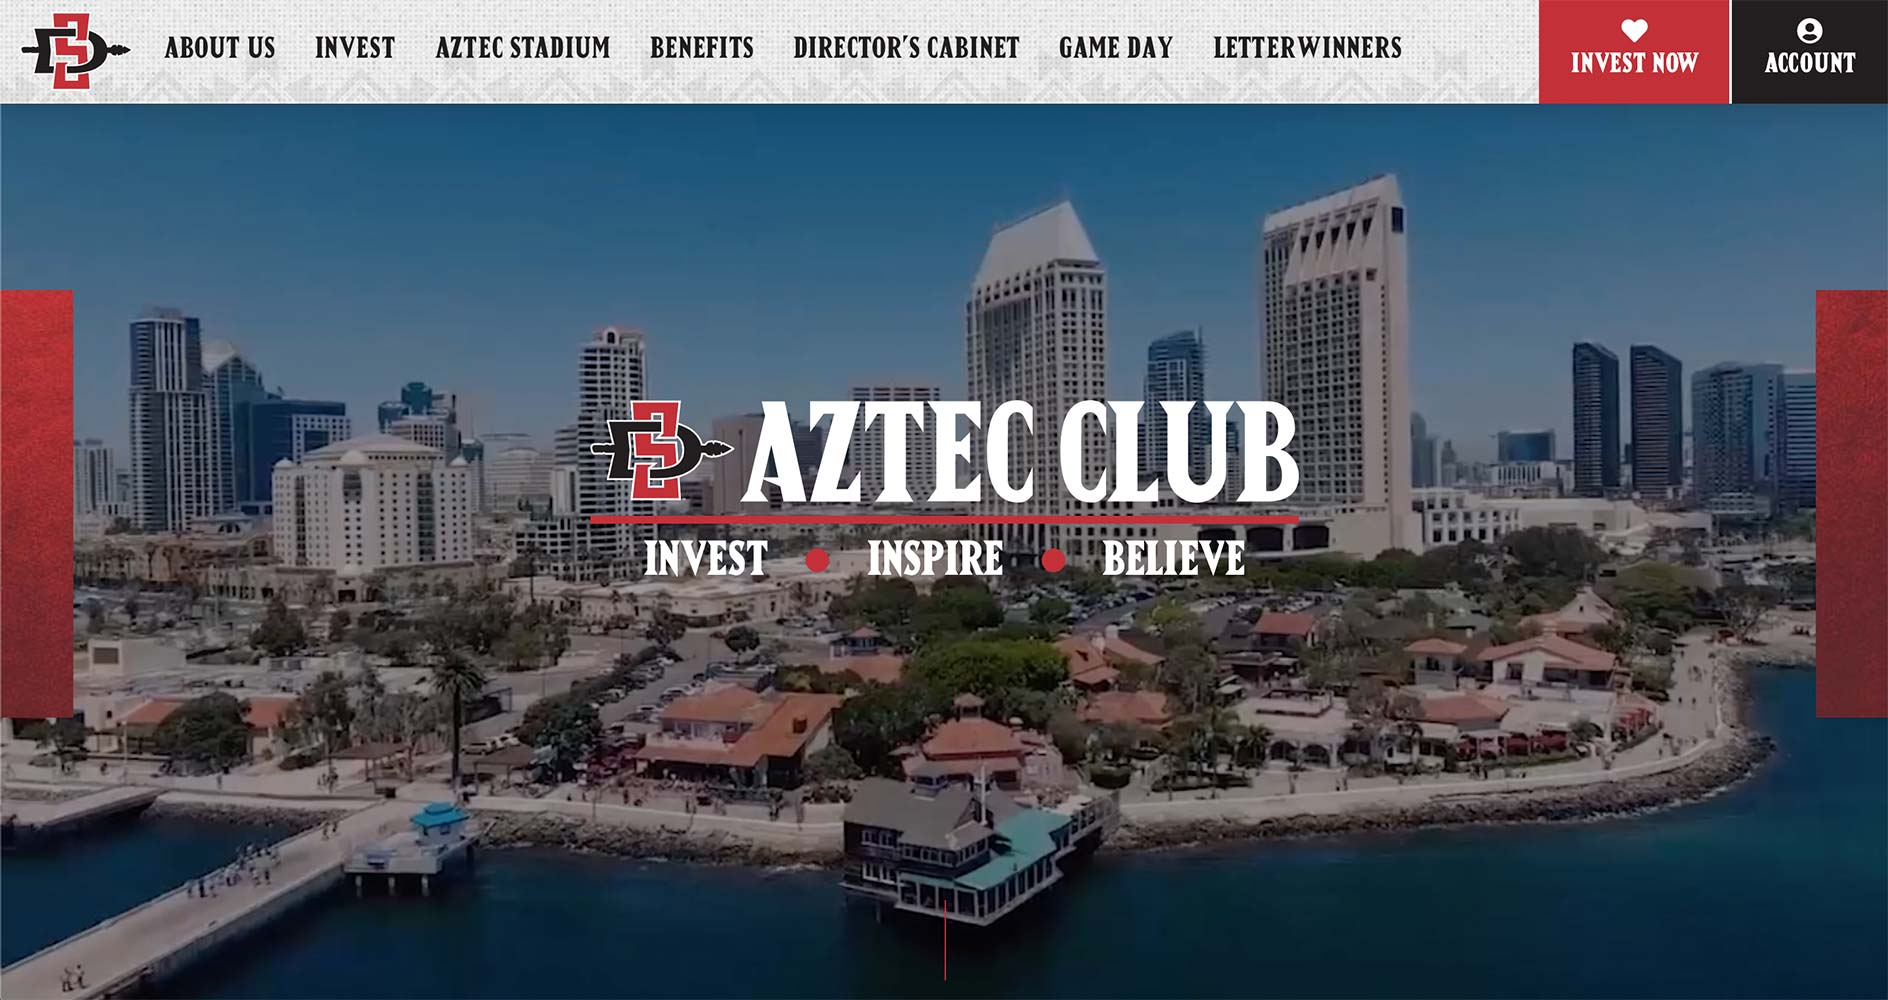 Aztec Club Website | <a href='https://sdsuaztecclub.com/' target='_blank'>Visit Site <i class='nc-icon-glyph arrows-1_share-91'></i></a><br><span>San Diego State University</span>